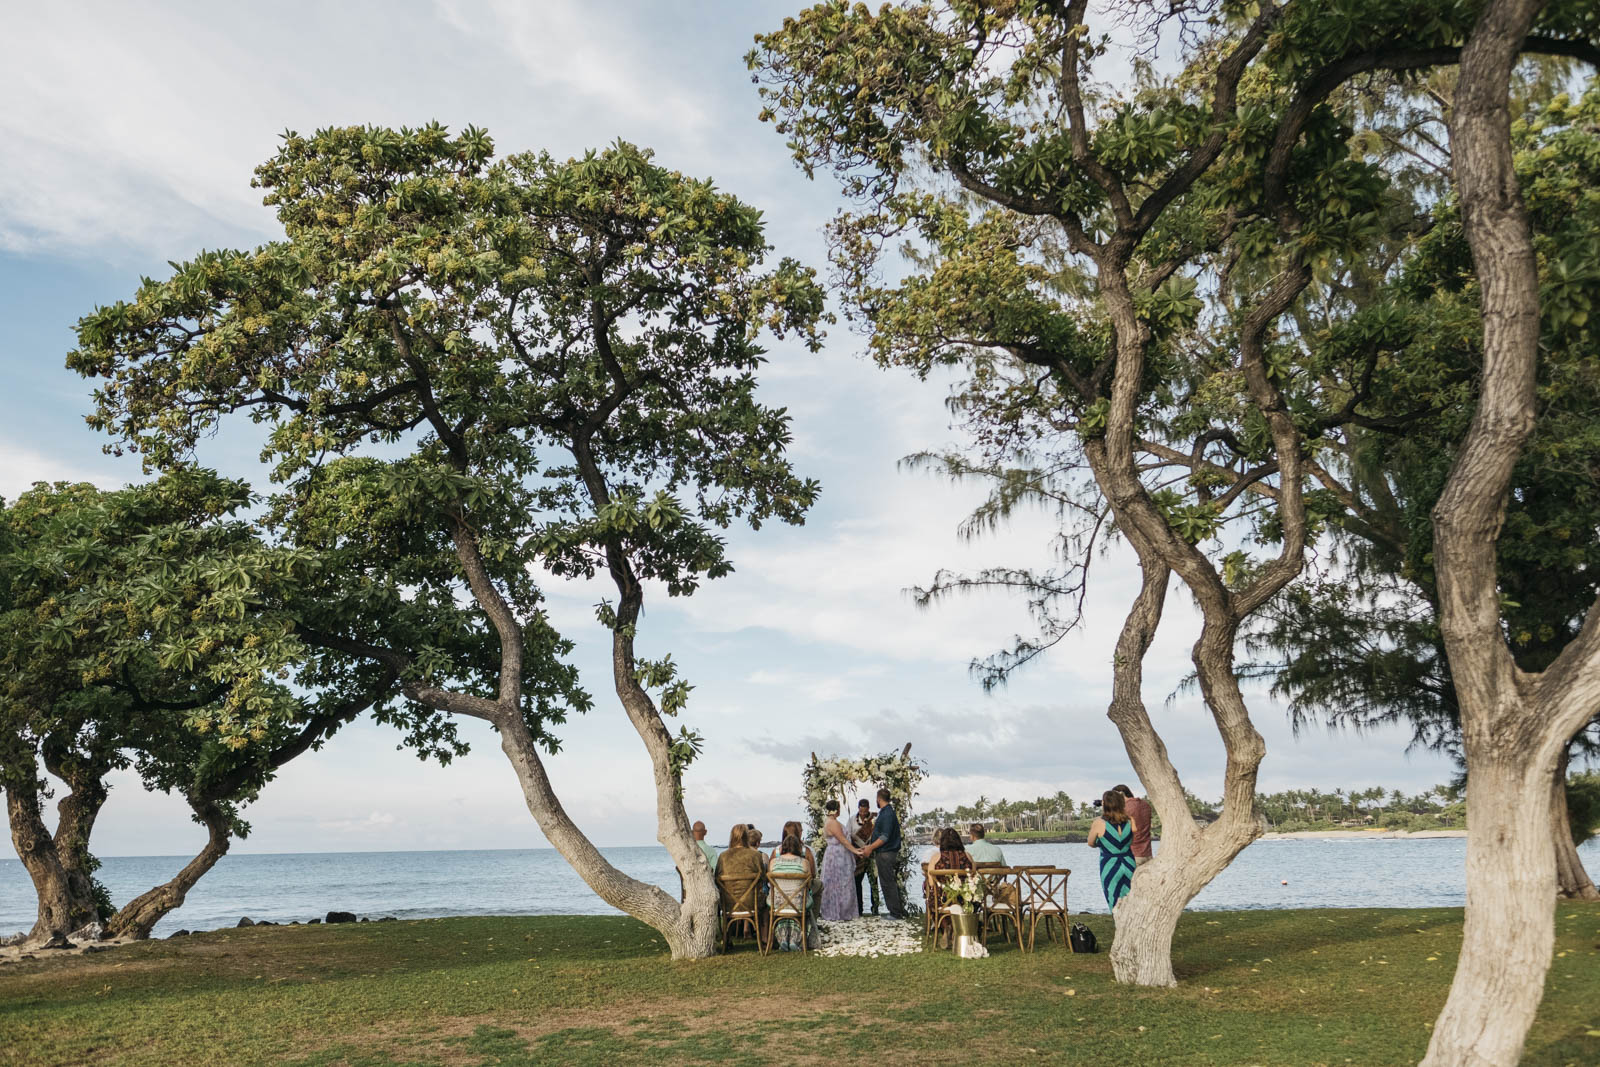 Destination wedding photography in Hawaii during ceremony.